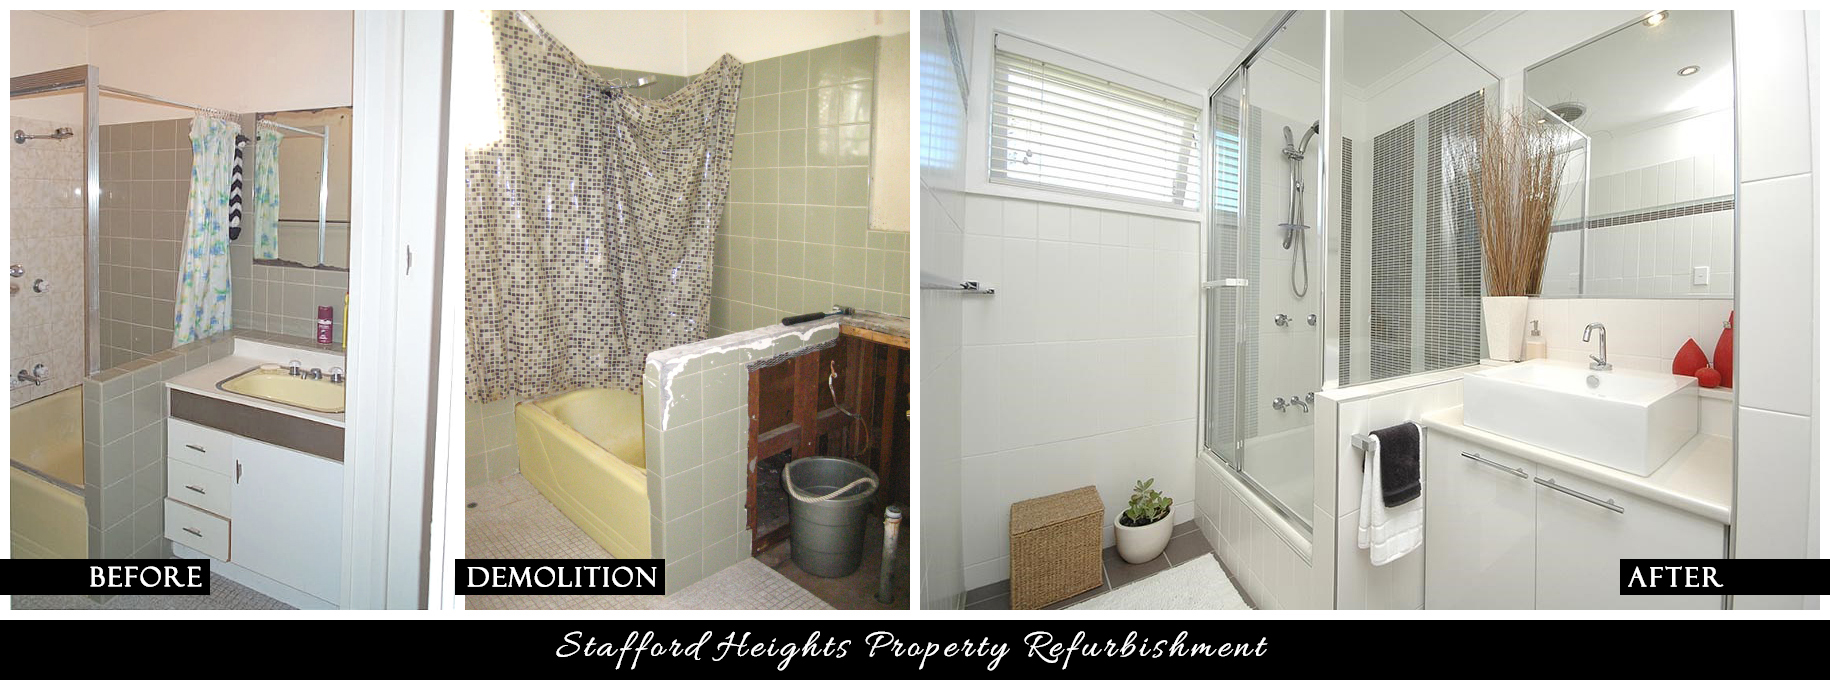 CANDY & CO. - STAFFORD HTS PROPERTY  Before & After - Bathroom